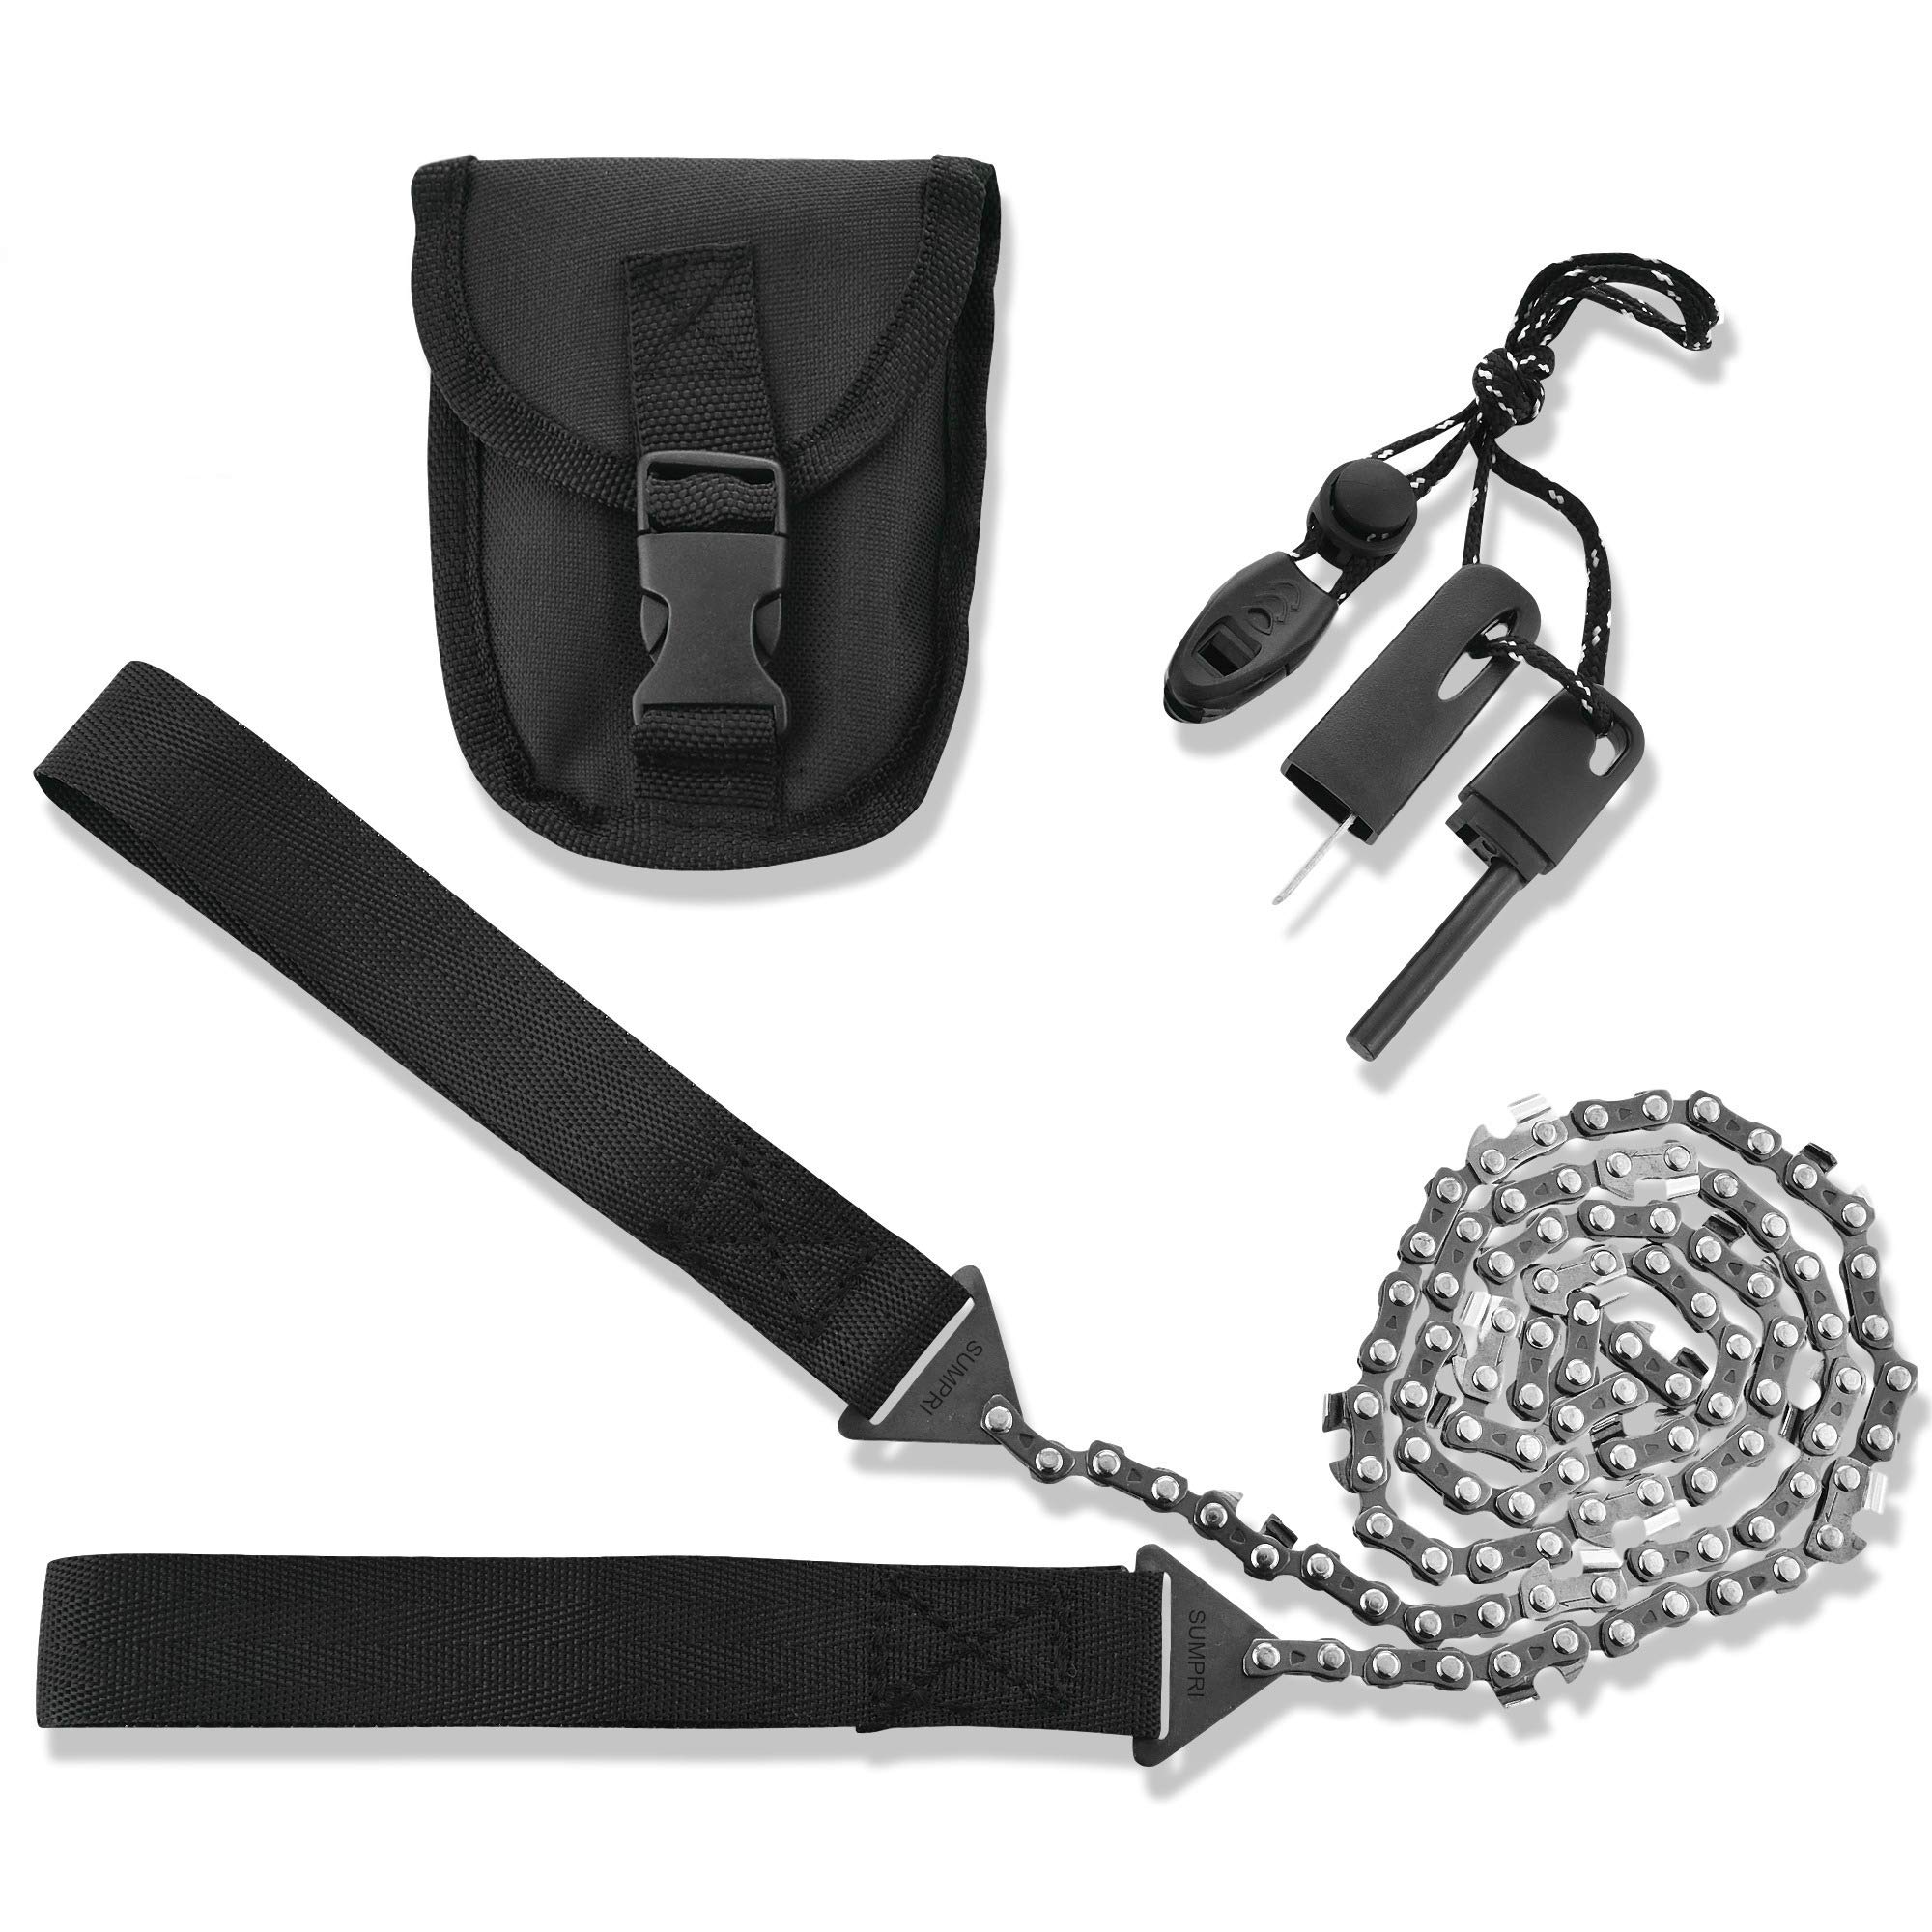 SUMPRI Pocket Chainsaw Survival Gear -36 Inch Long Chain & Free Fire Starter Kit -Compact Hand Saw for Trees -Folding Hand Saw Tool for Camping, Hunting Emergency Kit -Backpacking Gadget Camp Saw by SUMPRI (Image #1)